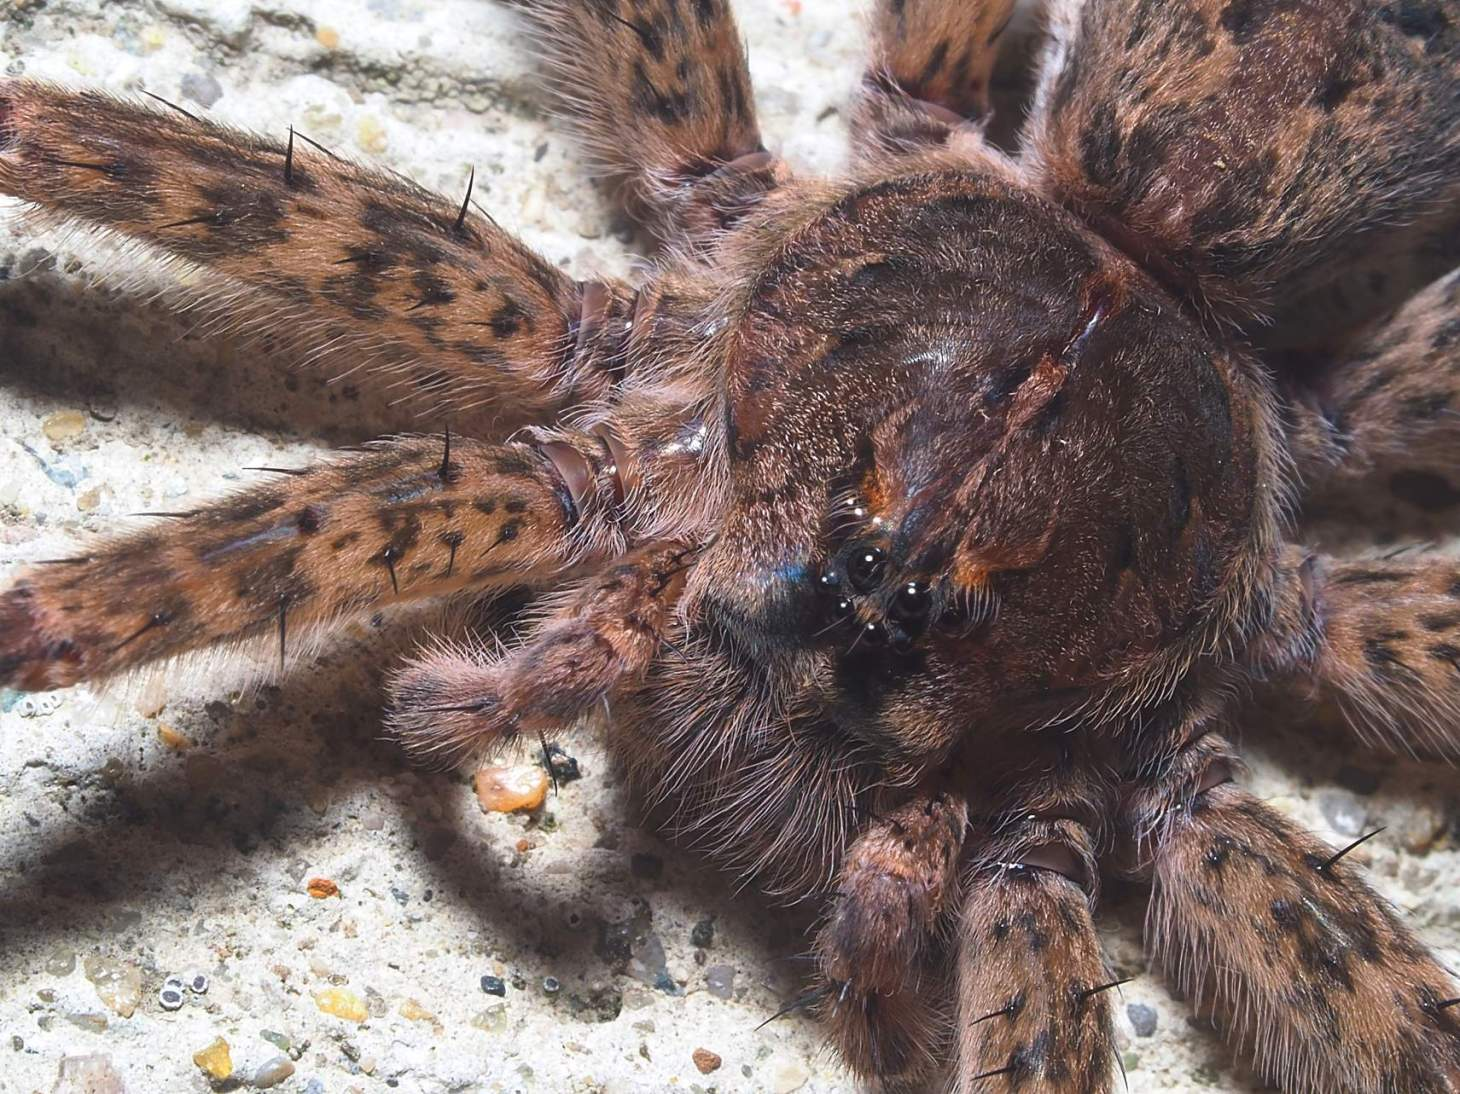 Fishing Spider (Note the Leopard-like spots on the legs of this beautiful animal!) ... Photo by Thomas Peace c. 2021